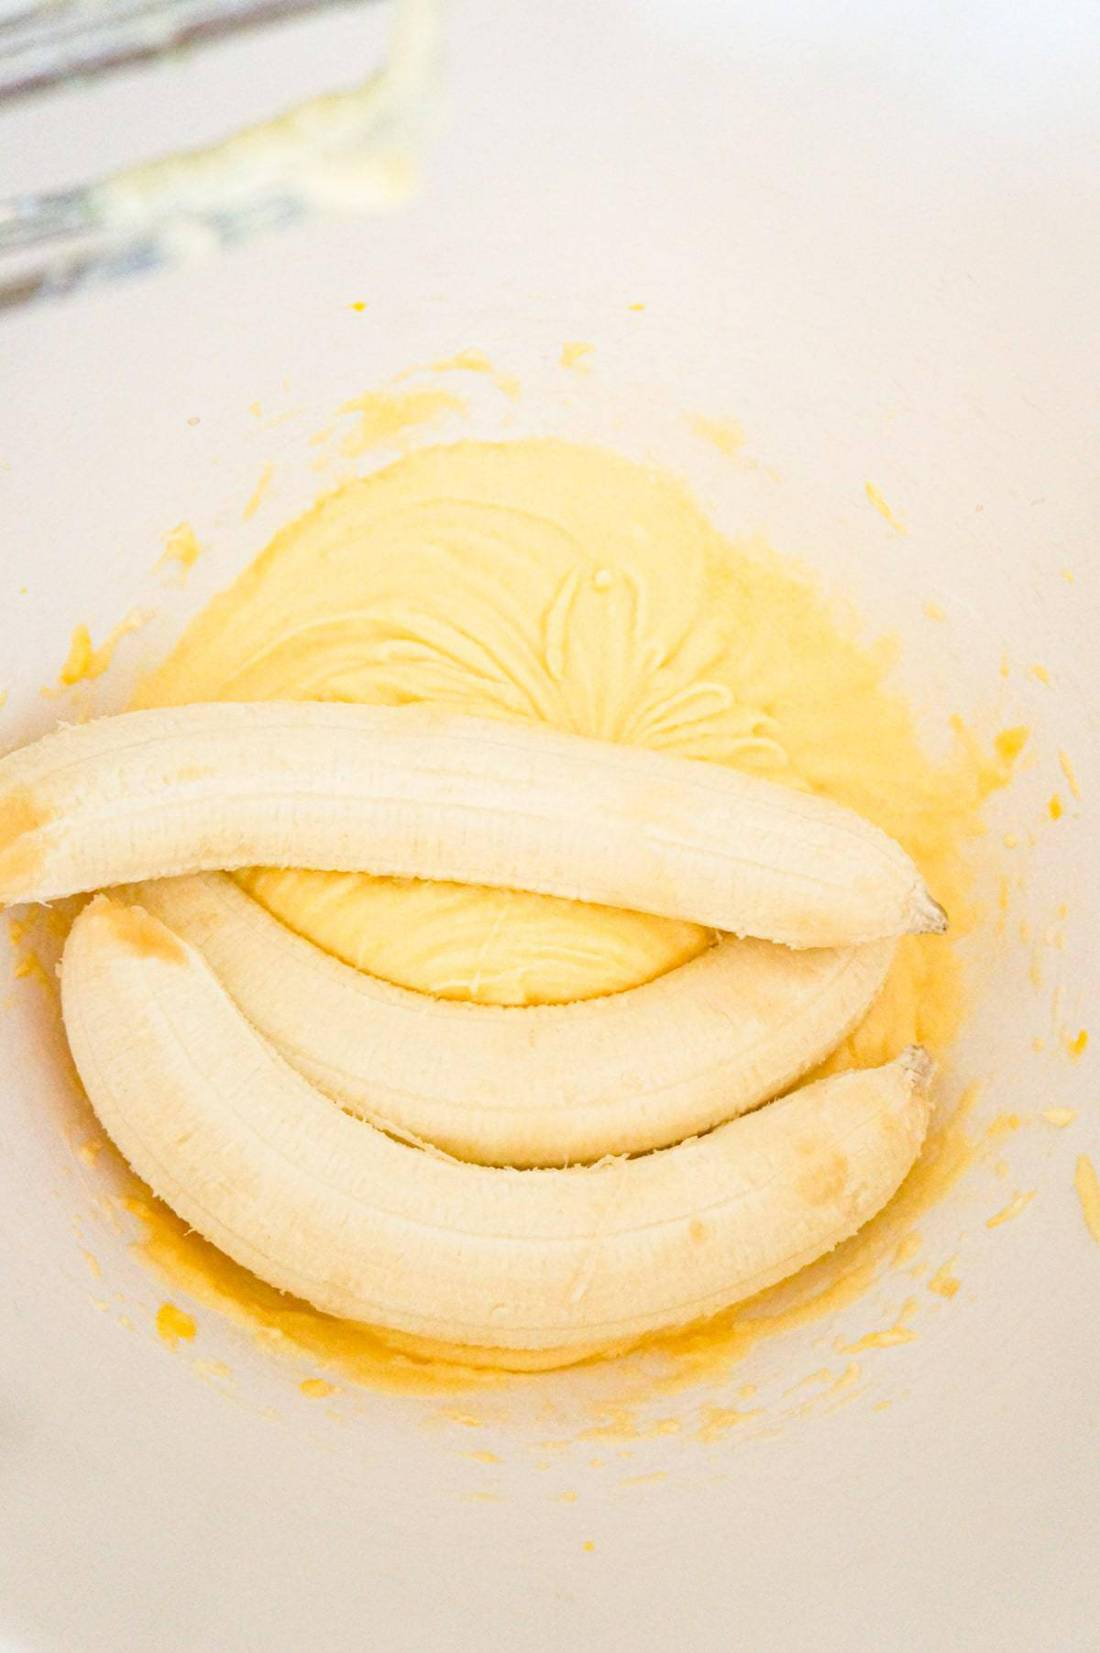 ripe bananas on top of creamed butter and sugar mixture in a mixing bowl